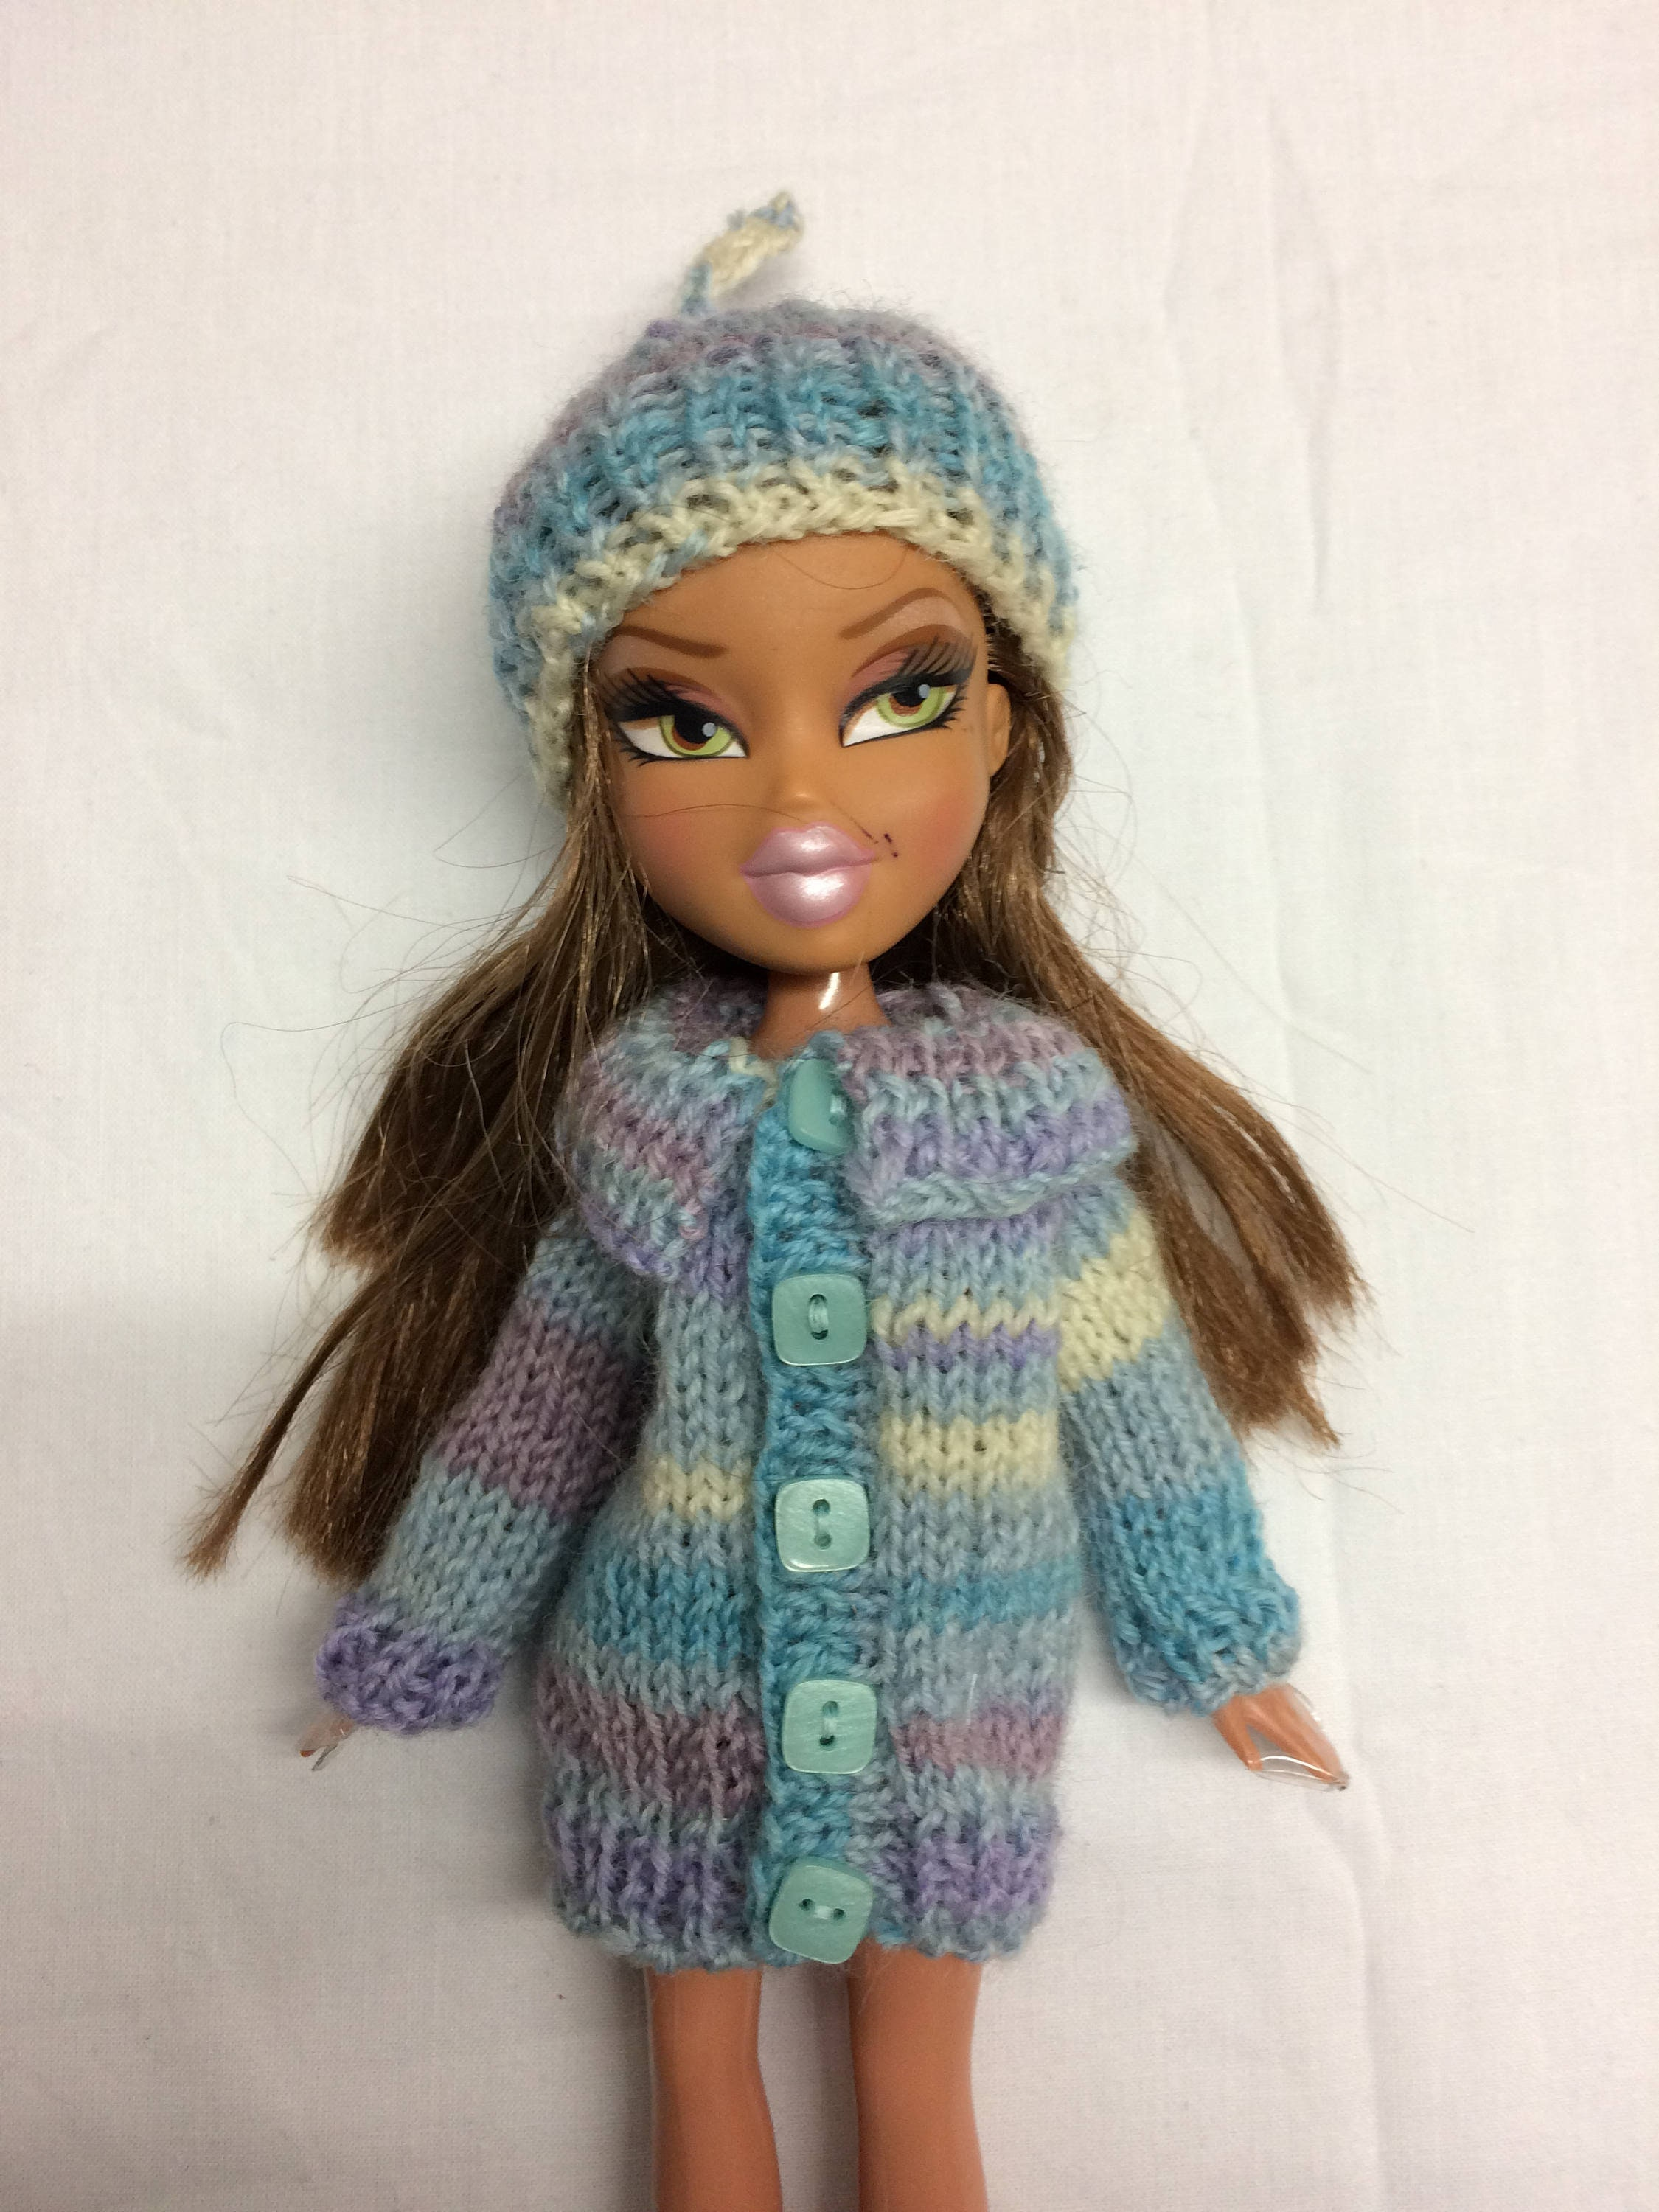 Blue, multi striped sweater and hat for 10inch Bratz doll. OOAK hand knit hat and coat with big collar for skinny doll. Doll clothes.